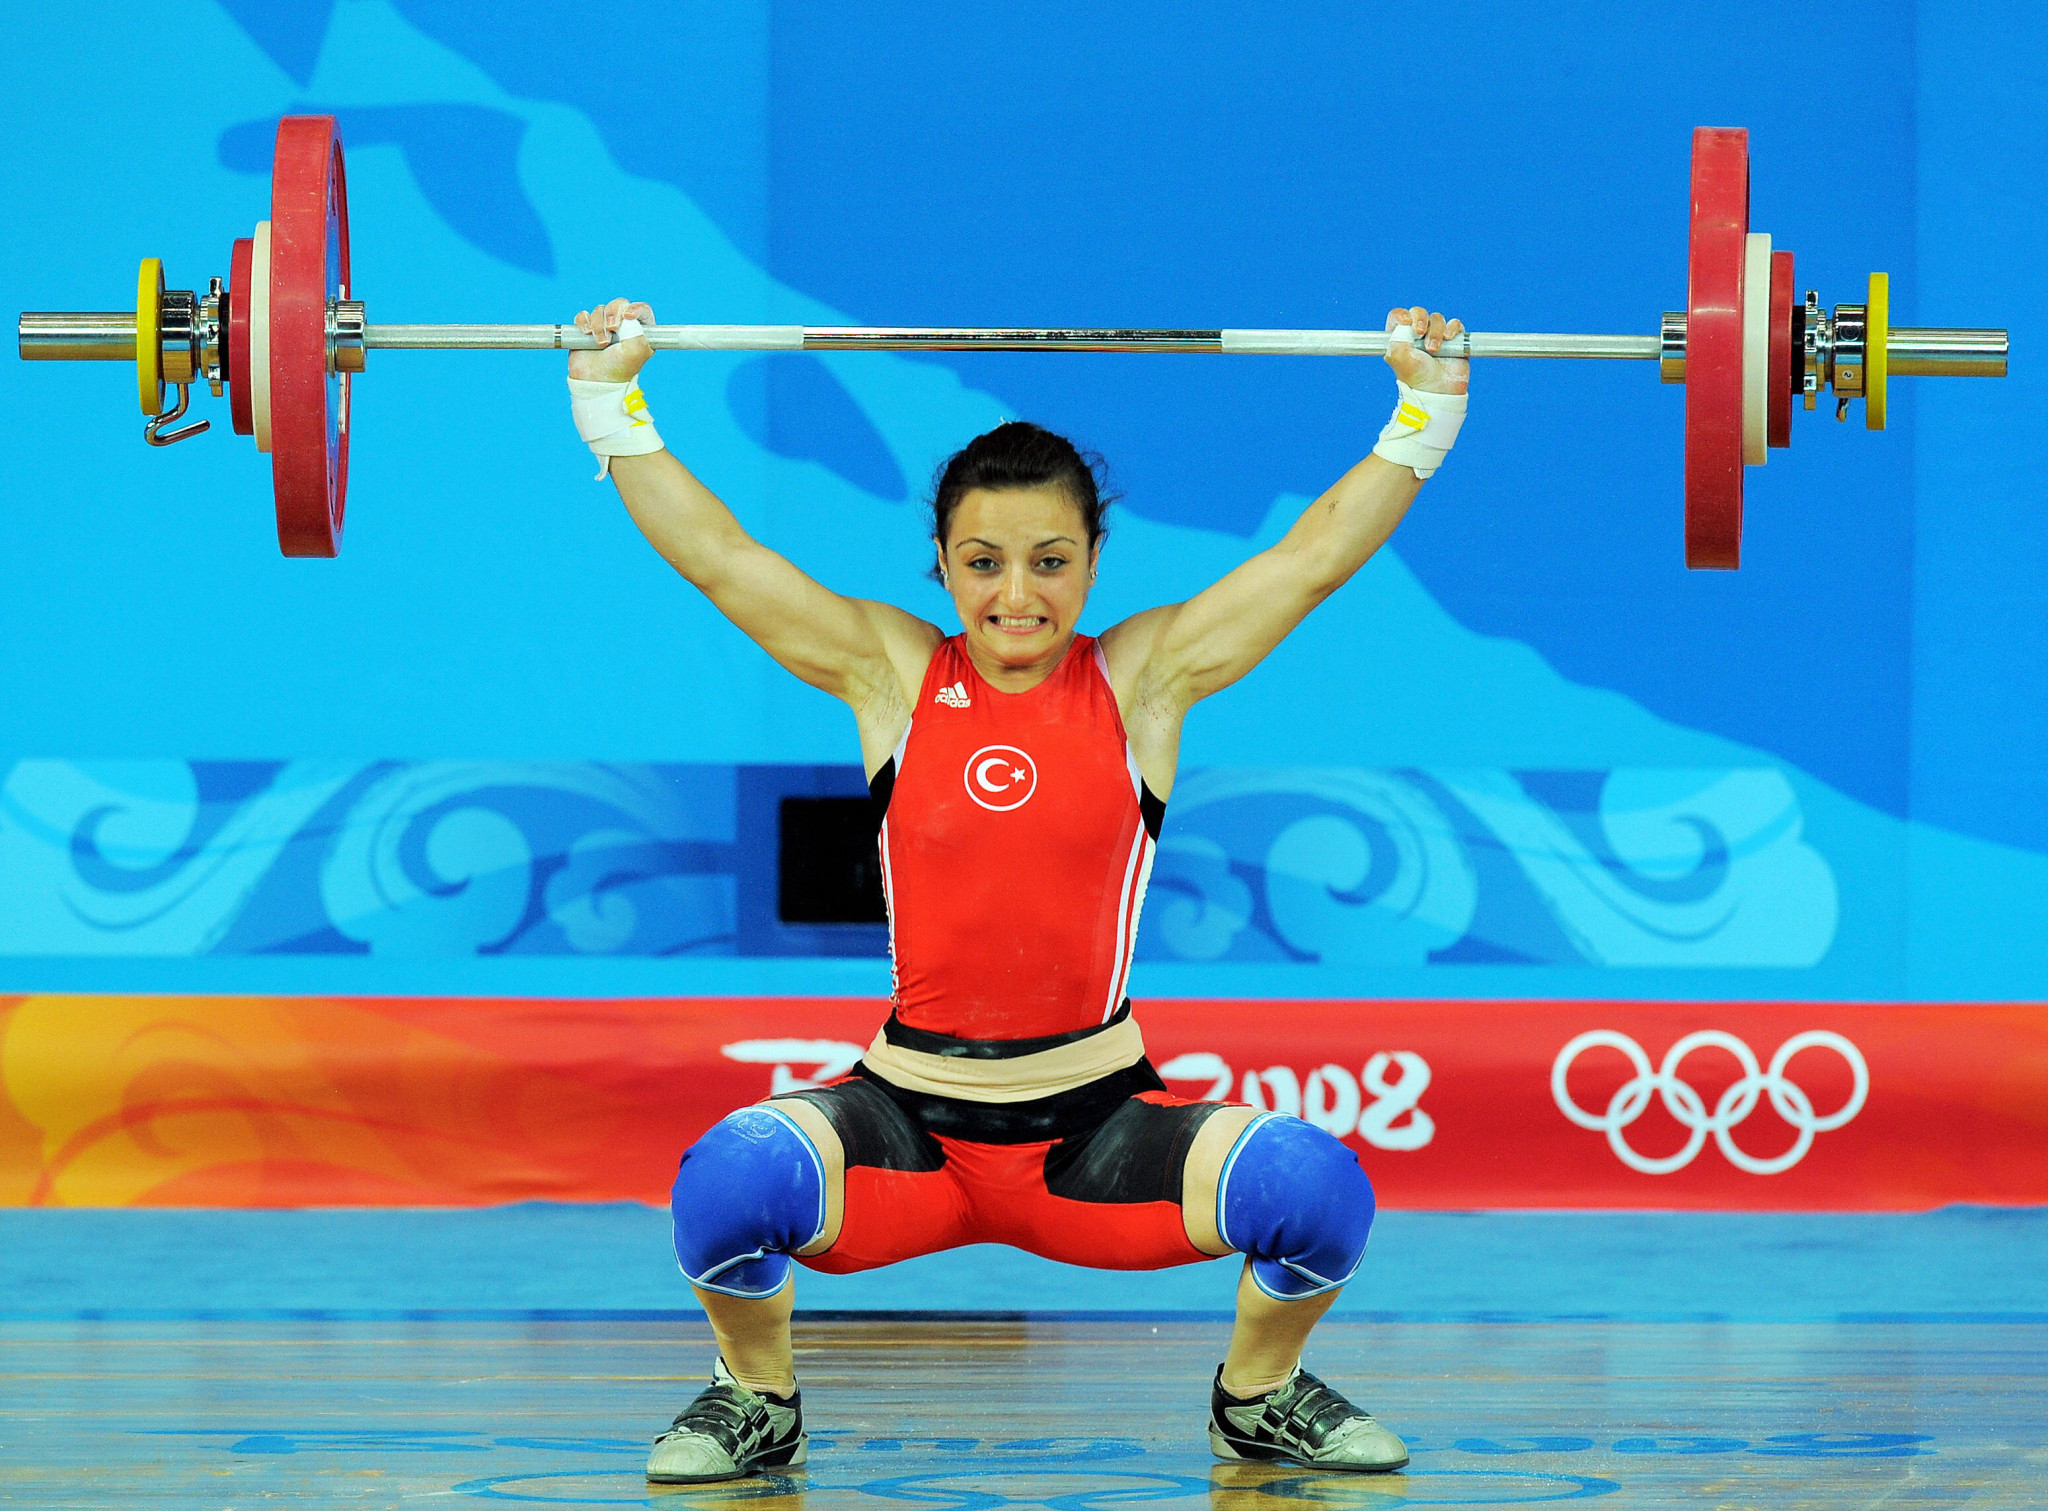 Turkish weightlifter Sibel Ozkan, who won silver at Beijing 2008 in the women's 48kg, is among the lifters from the country disqualified after competing at the Olympics ©Getty Images